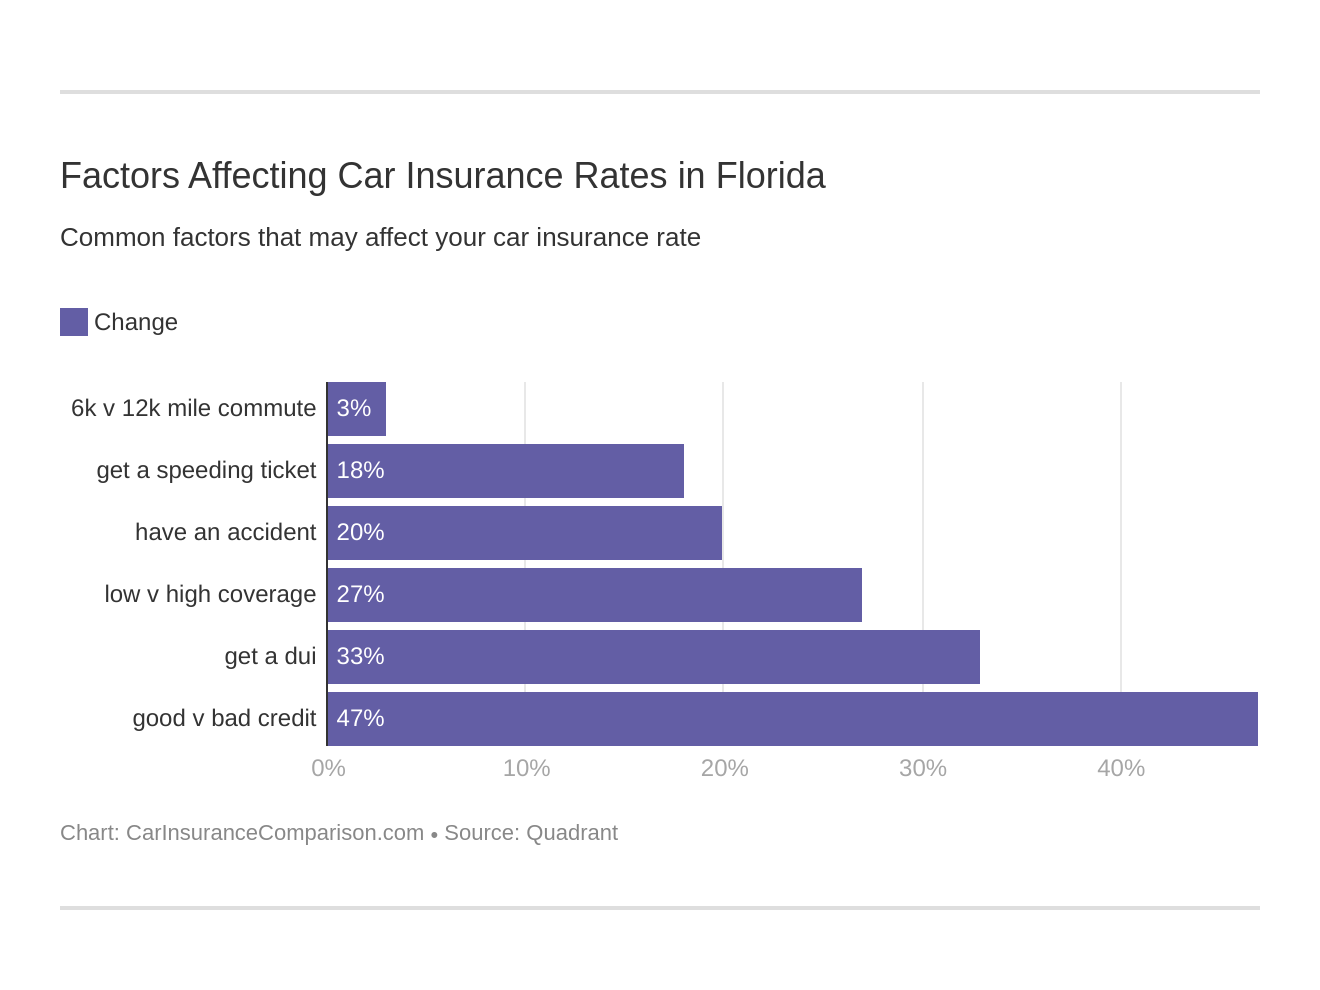 Factors Affecting Car Insurance Rates in Florida